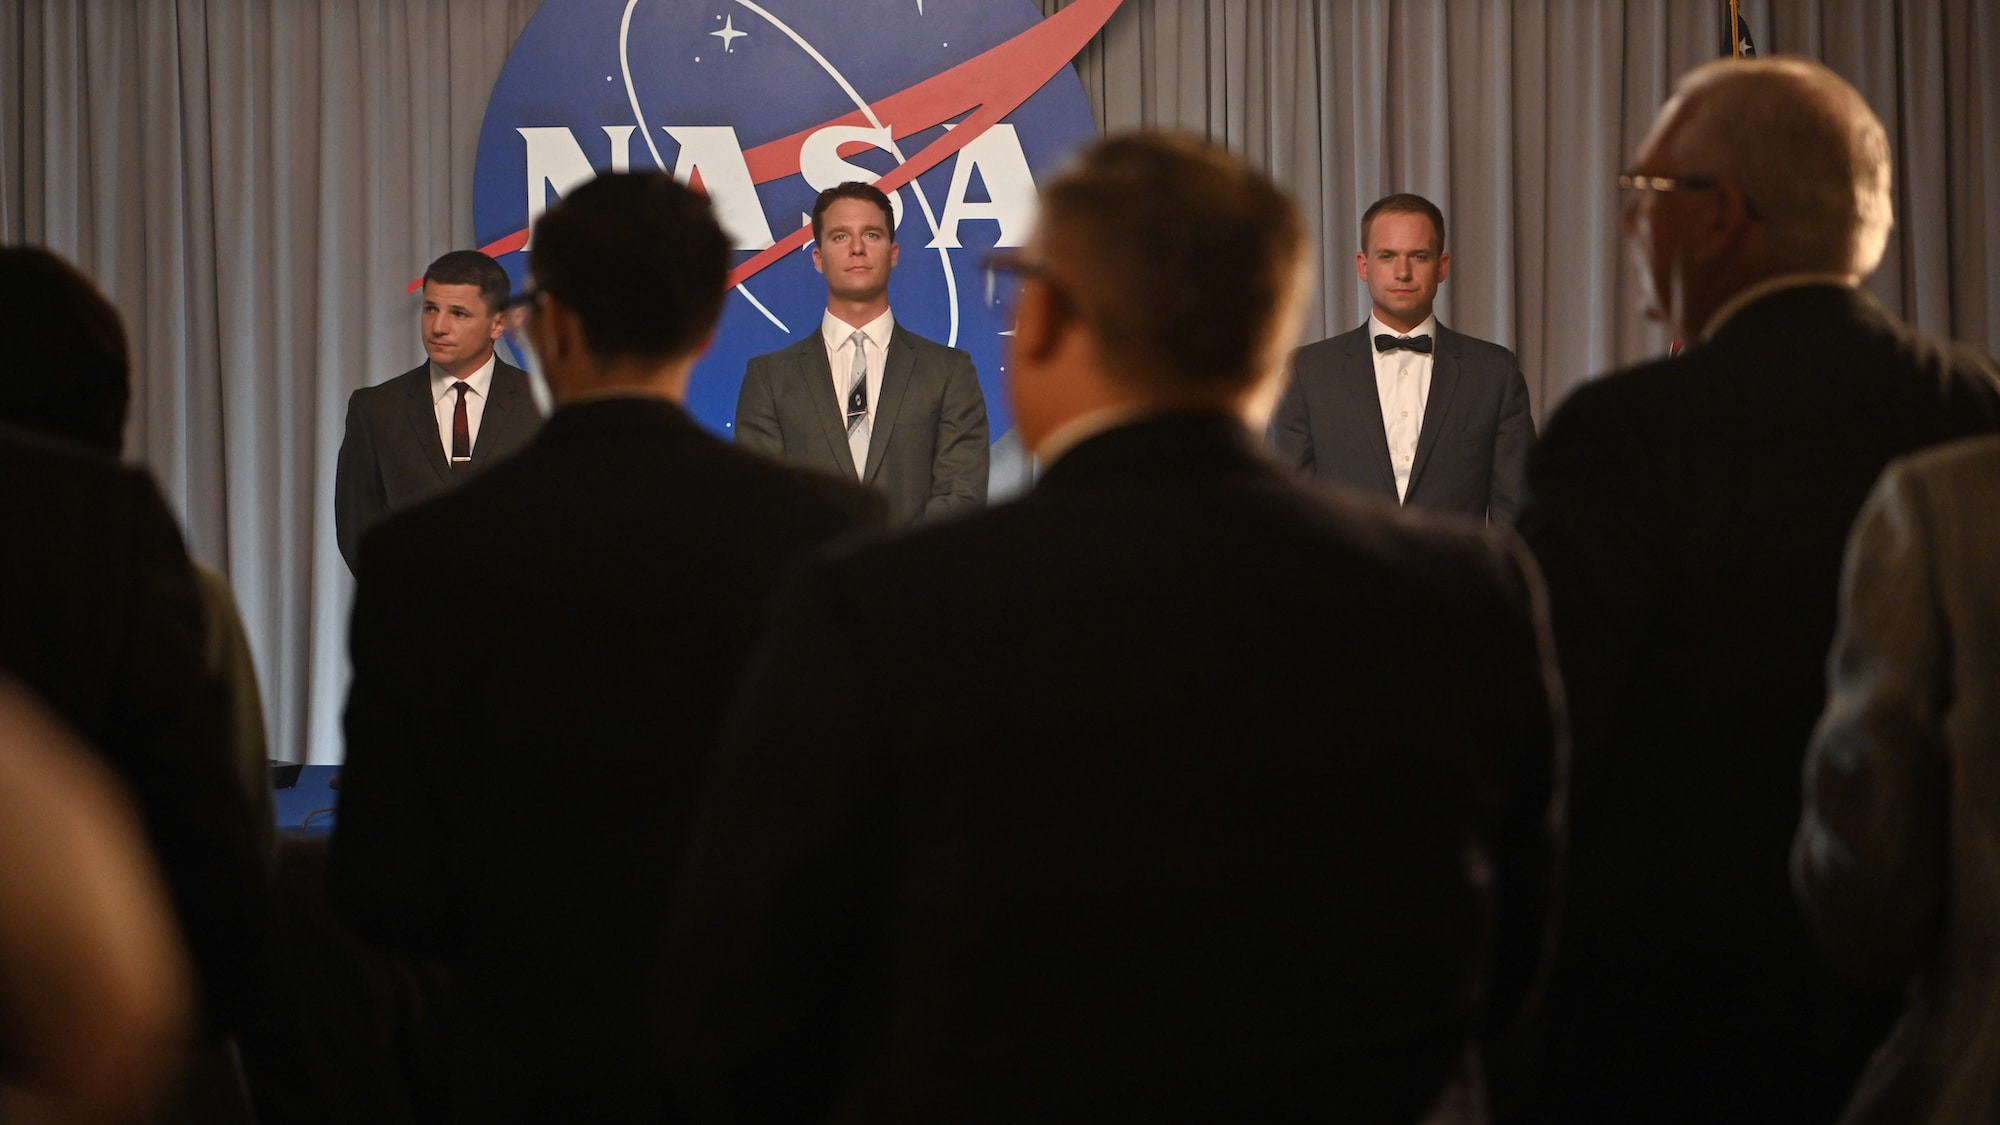 Back L to R: Michael Trotter as Gus Grissom, Jake McDorman as Alan Shepard and Patrick J. Adams as John Glenn during a press conference in National Geographic's THE RIGHT STUFF streaming on Disney+. (National Geographic/Gene Page)